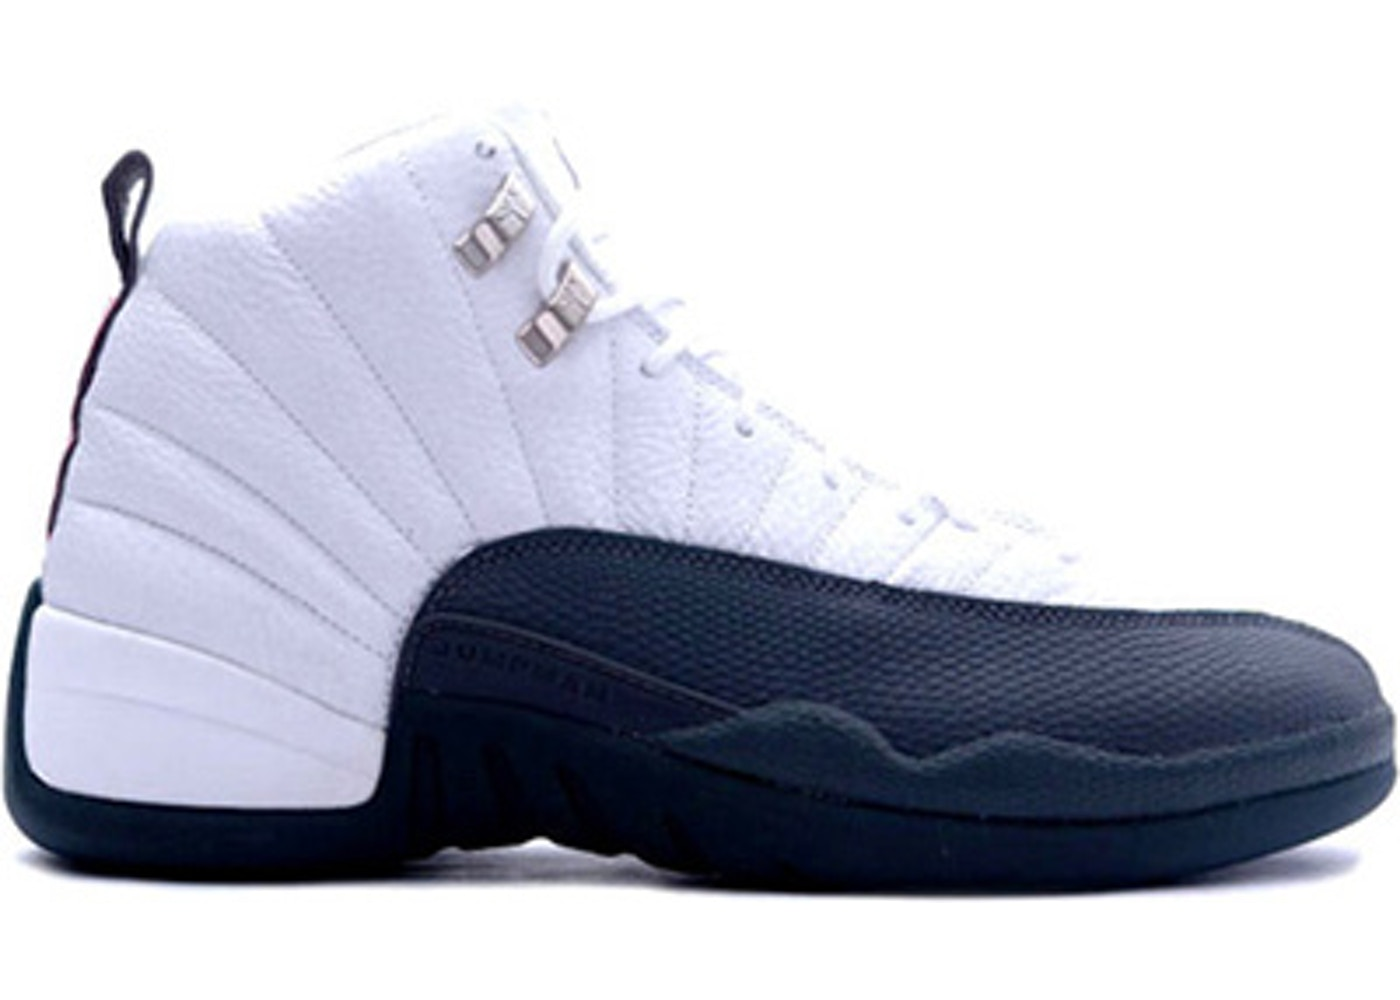 881a812c659f Jordan 12 Retro Flint Grey - 136001-102